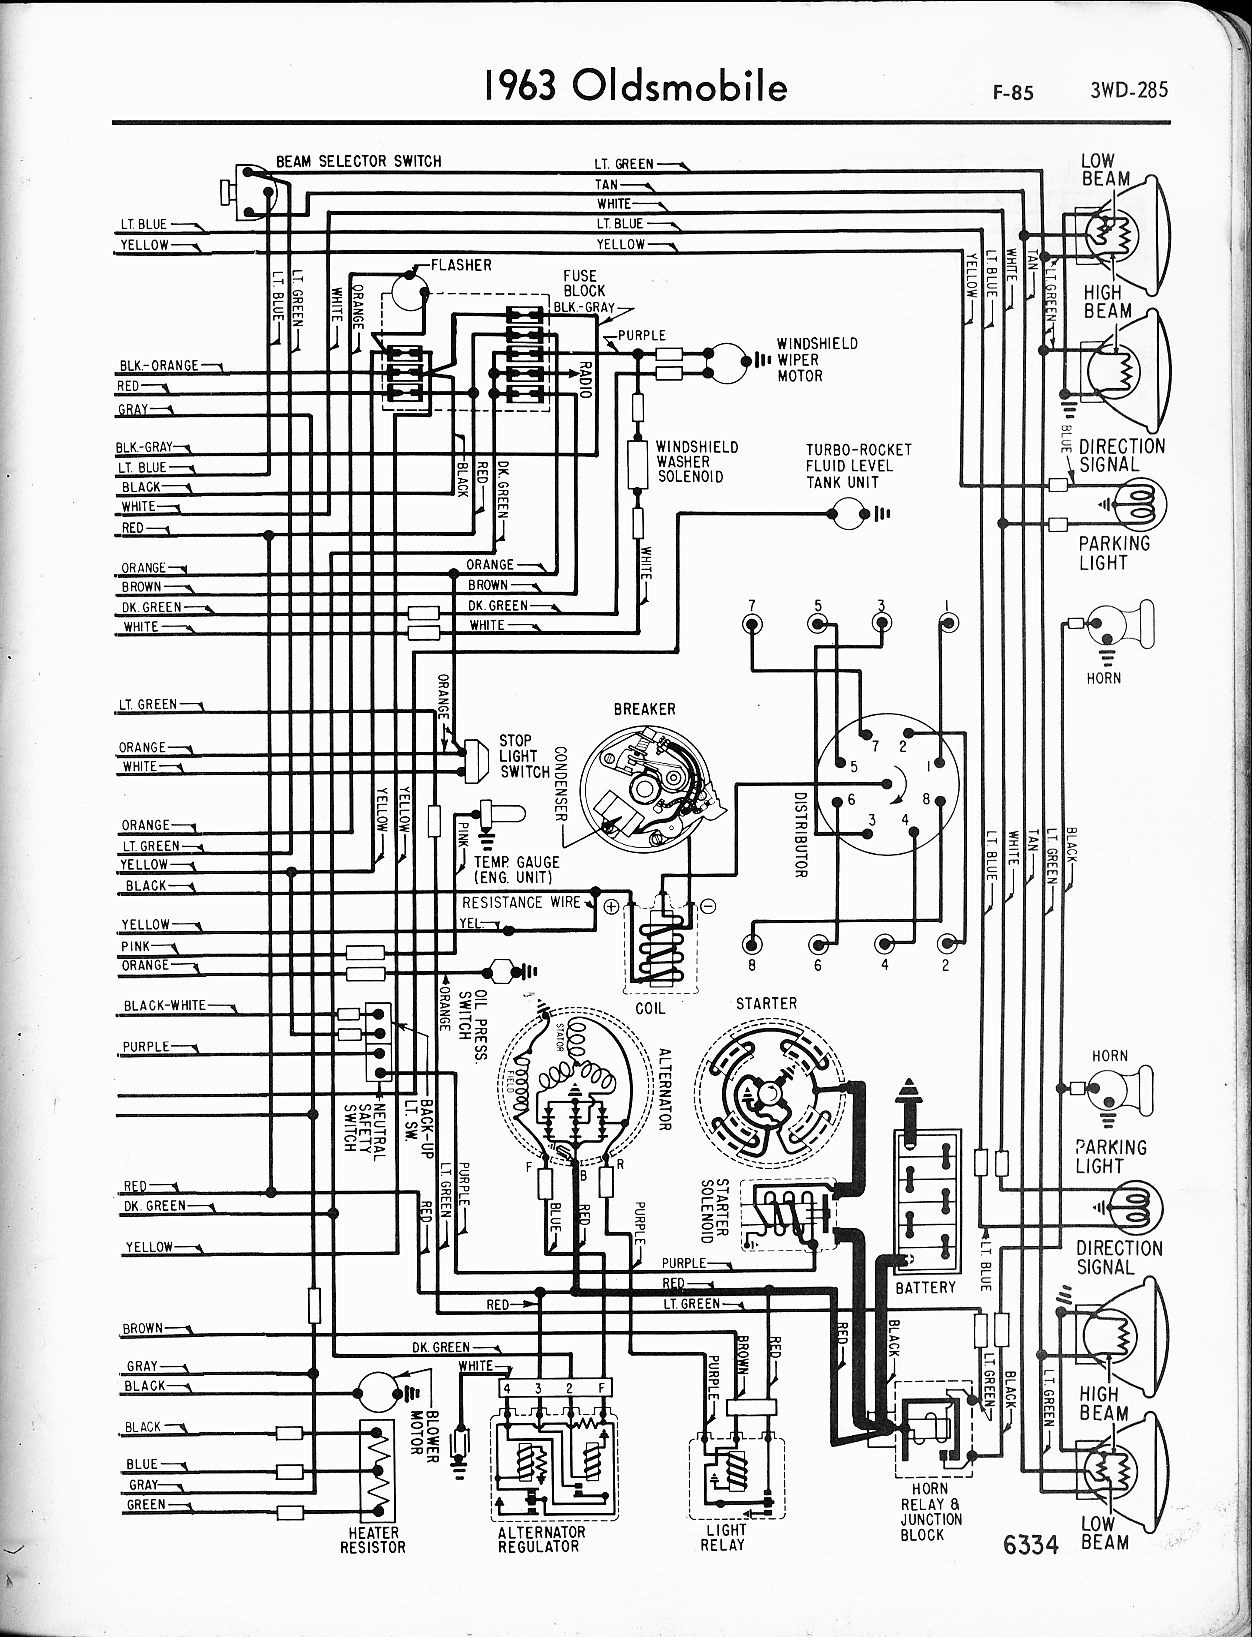 Wiring Diagram 1986 Oldsmobile Cutlass Ciera Engine Diagram Html Full Version Hd Quality Engine